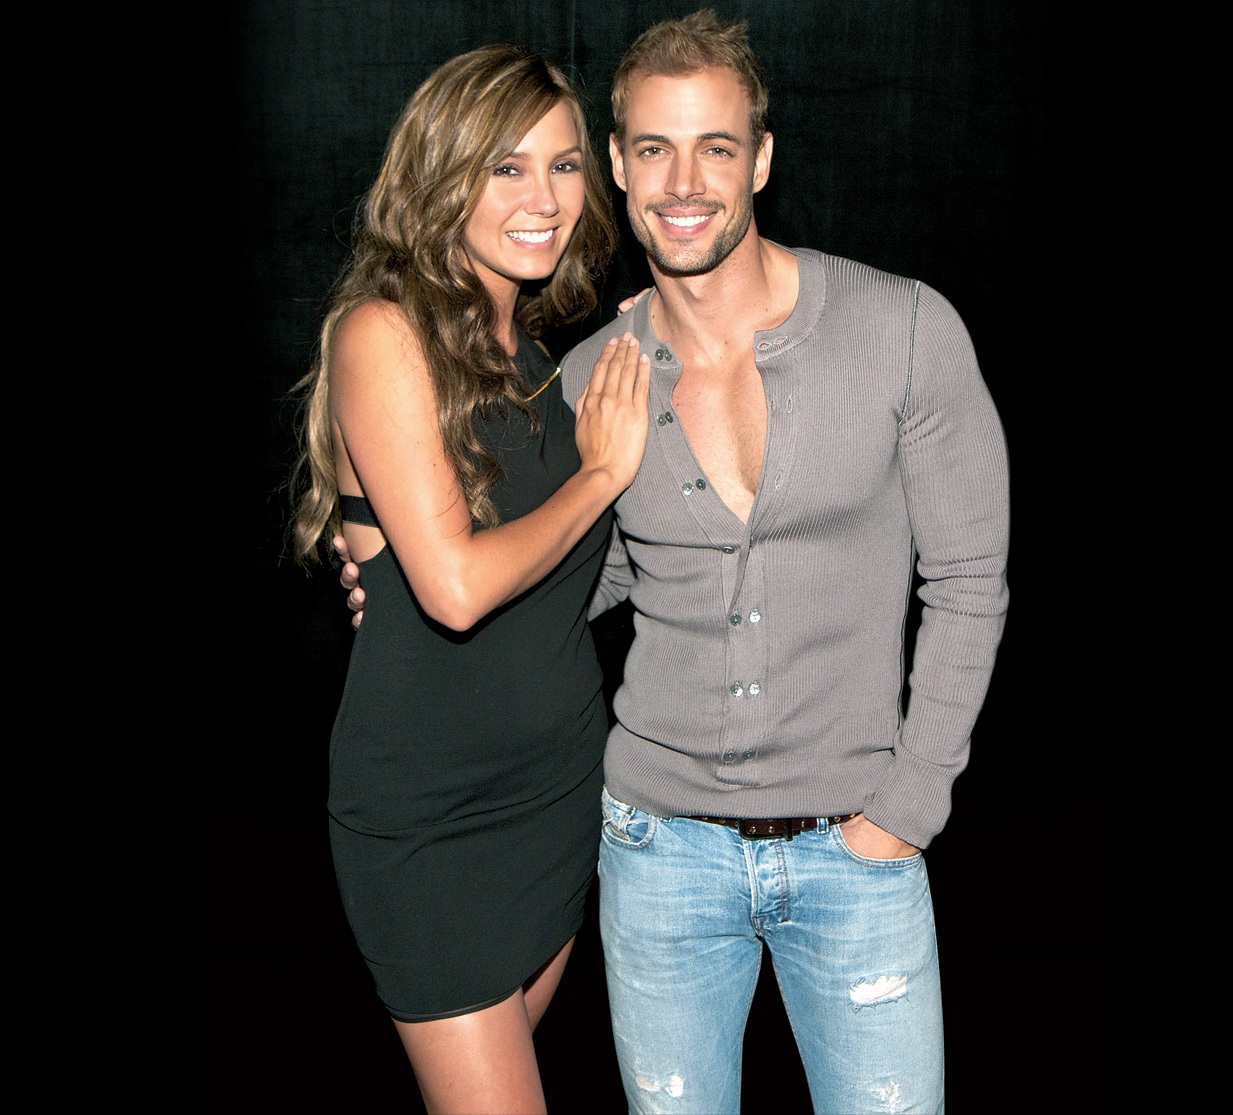 William Levy y Elizabeth Gutierrez juntos - William Levy y Elizabeth ...